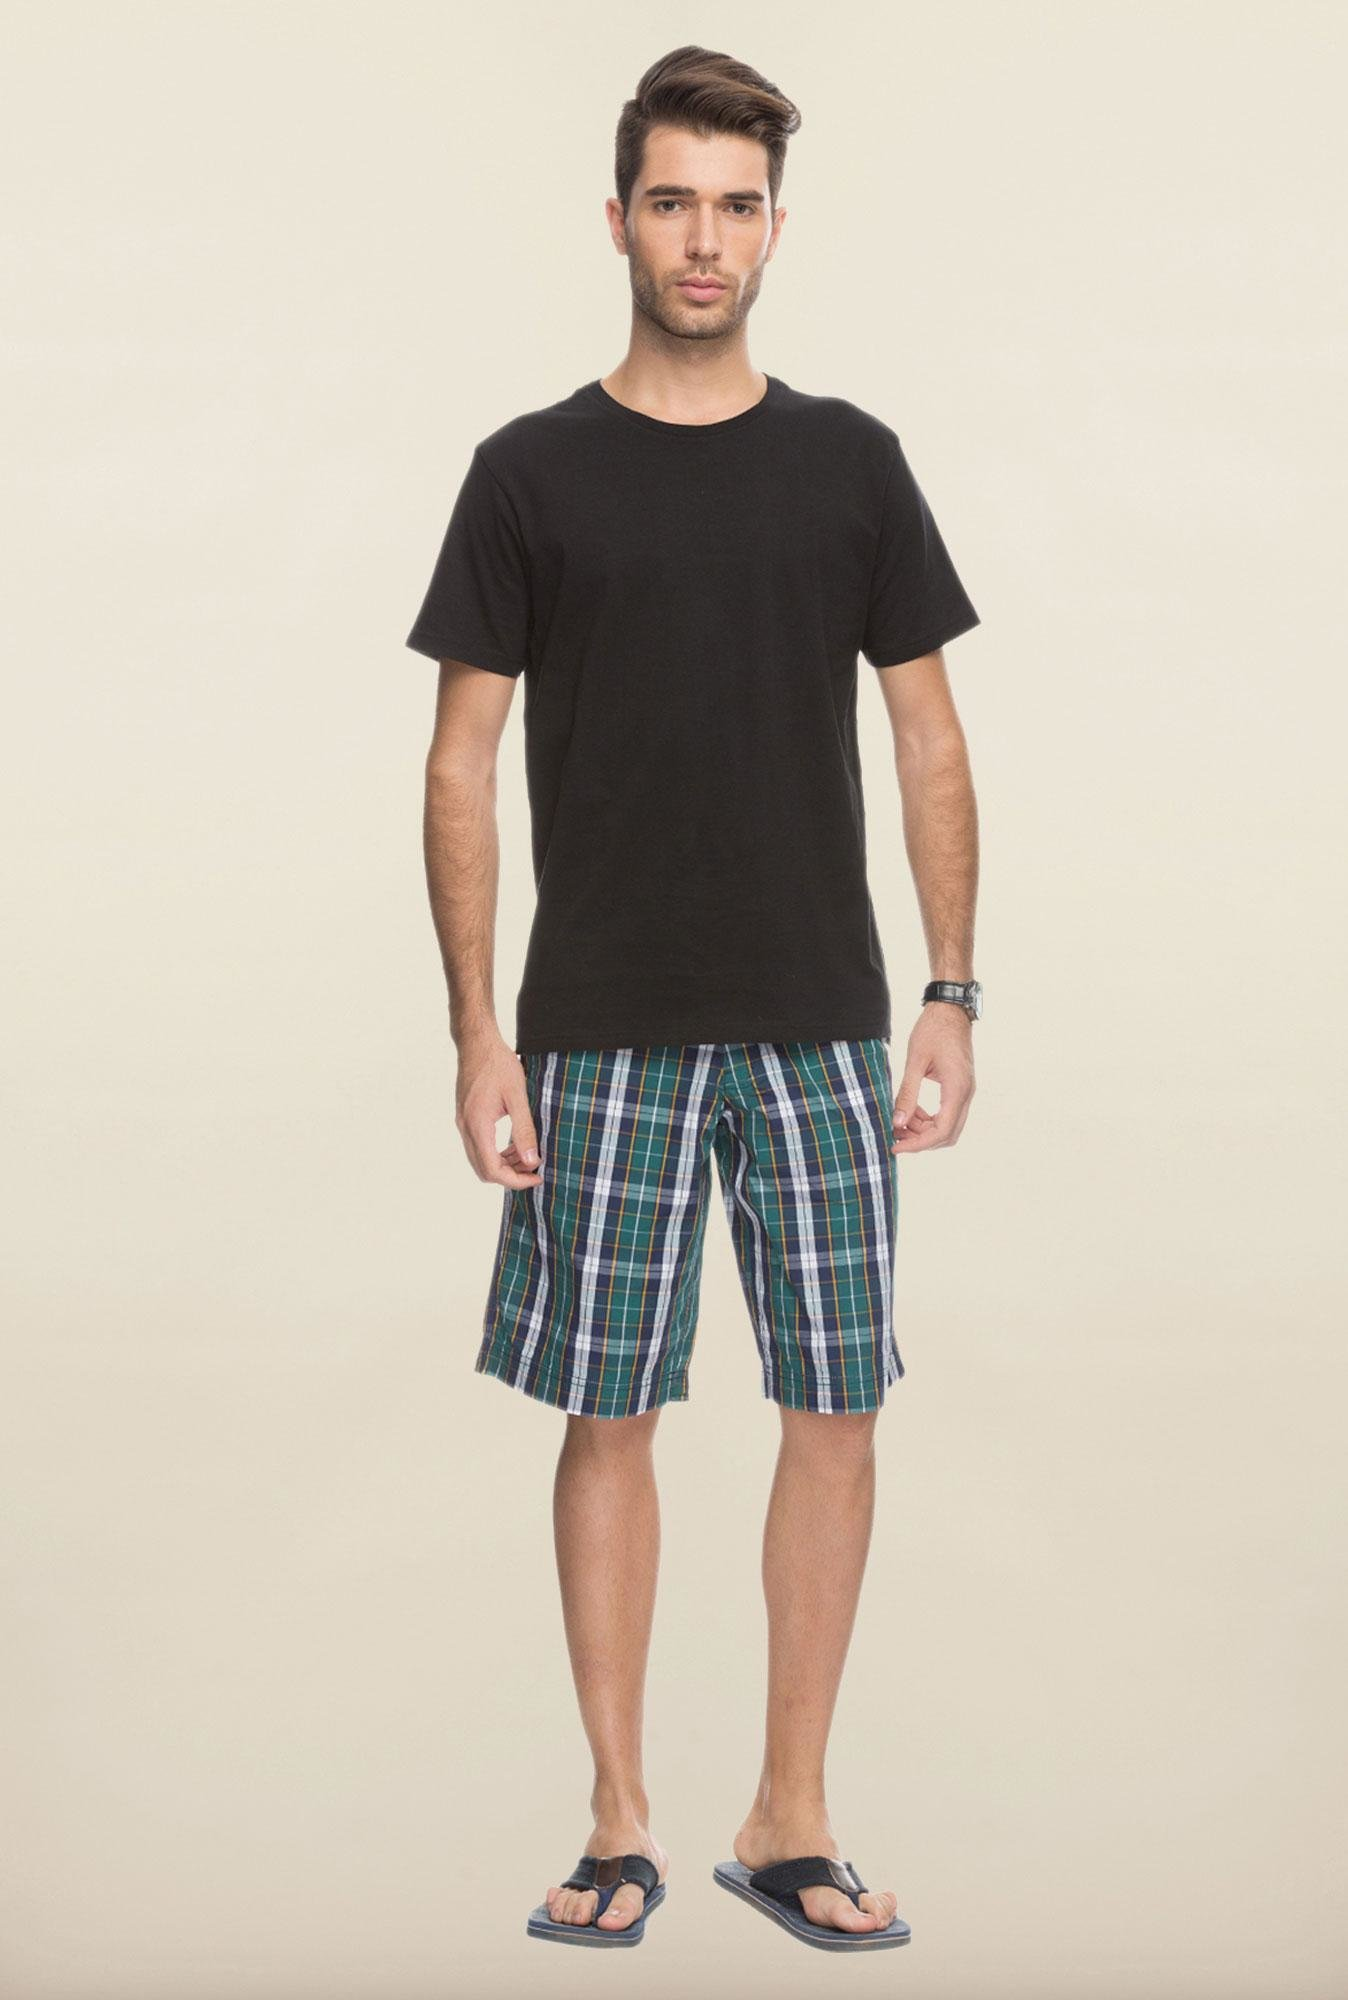 Cottonworld Green Checks Cotton Shorts